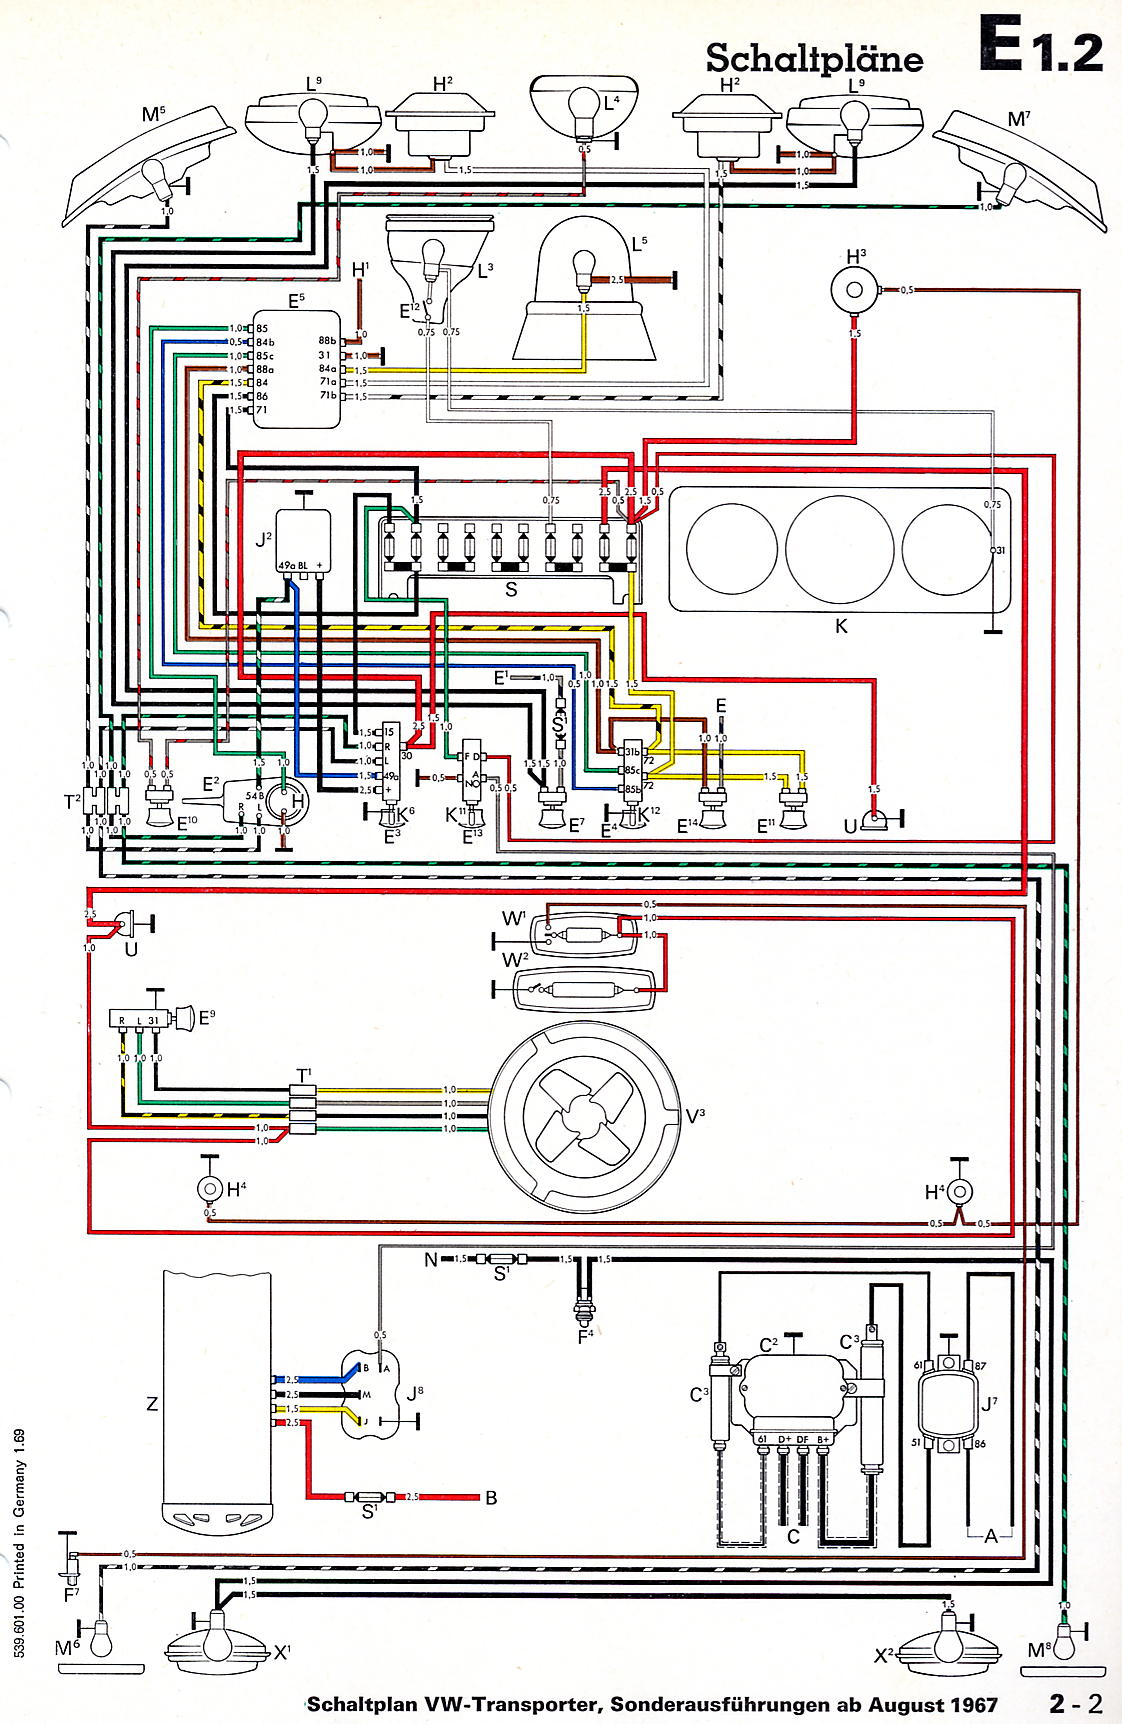 vw bus wiring diagram wiring diagram and hernes girardin bus wiring diagrams led light bar switch wire diagram for